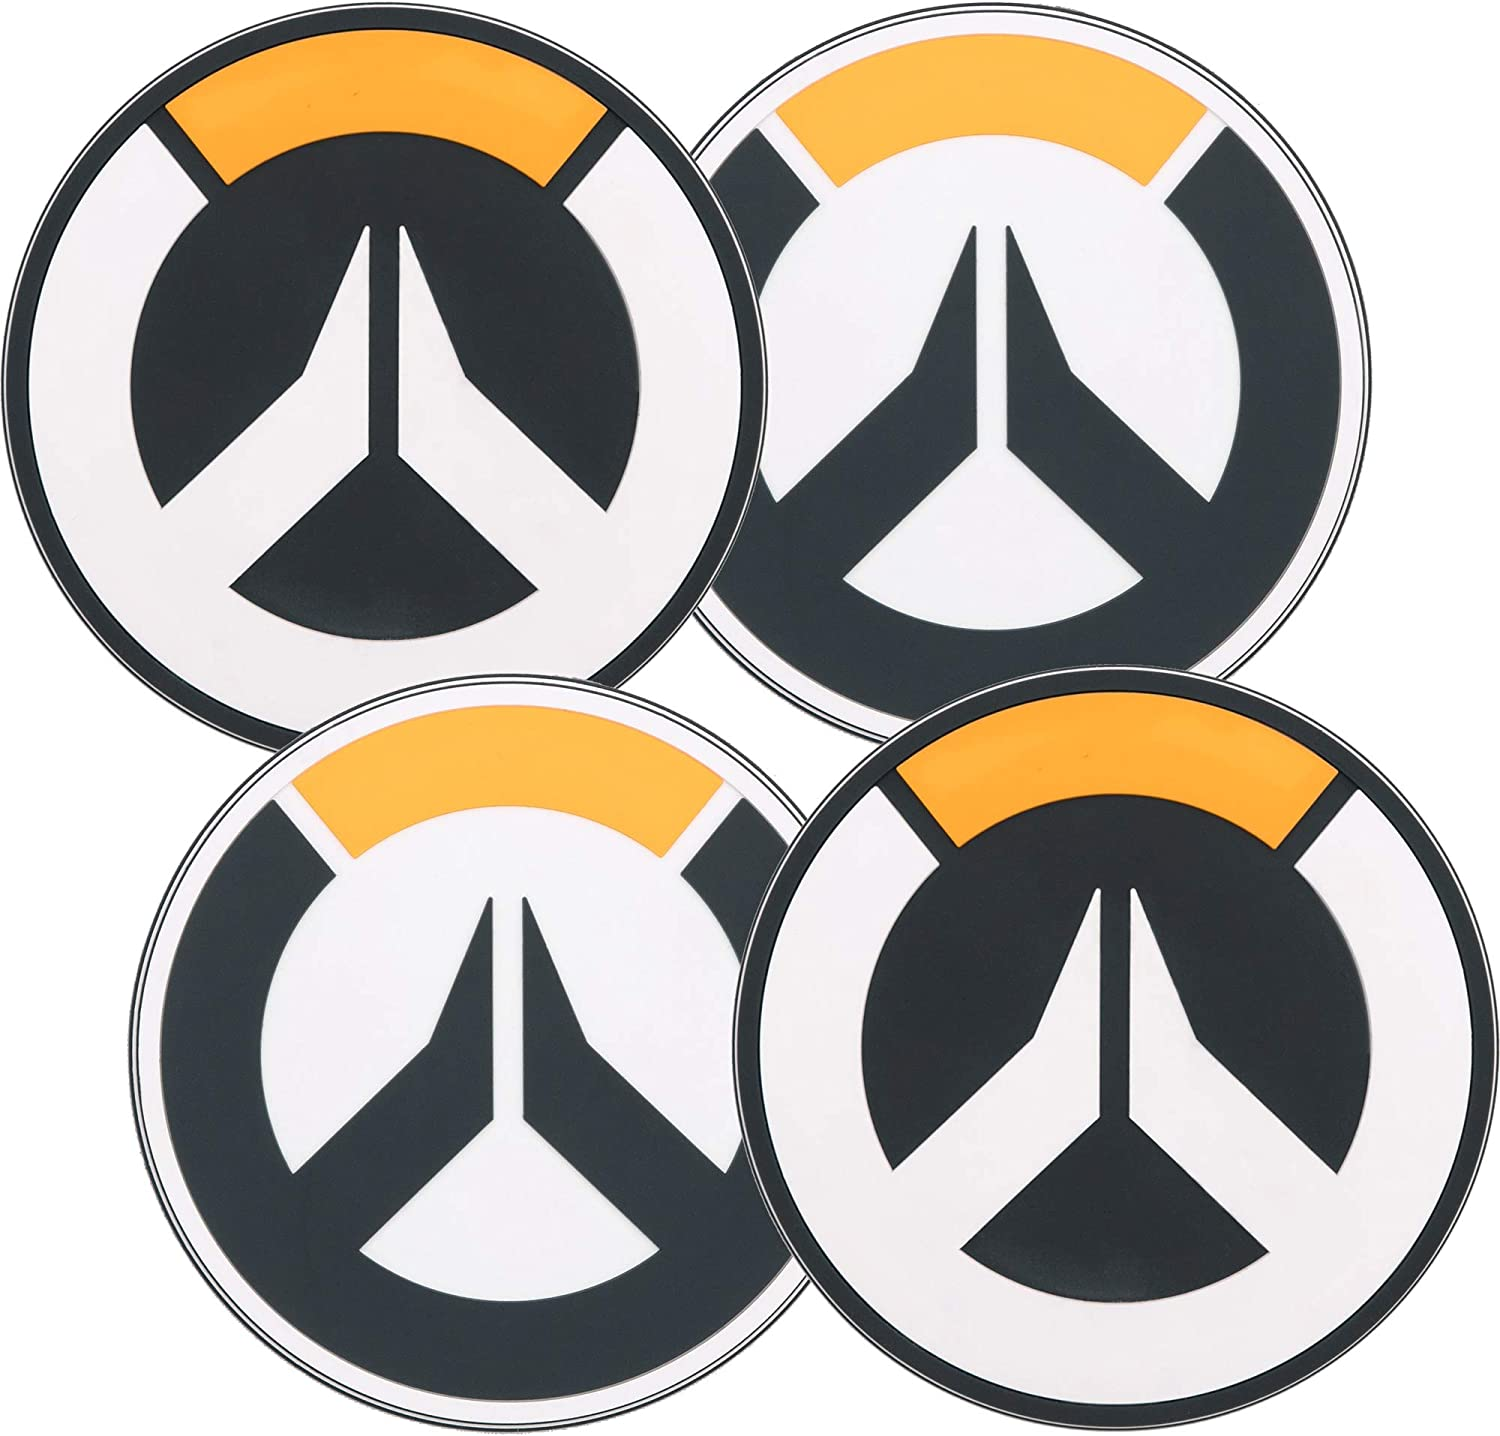 Jinx Coasters Overwatch Logo 4 Pack New J8917 Amazon Co Uk Toys Games